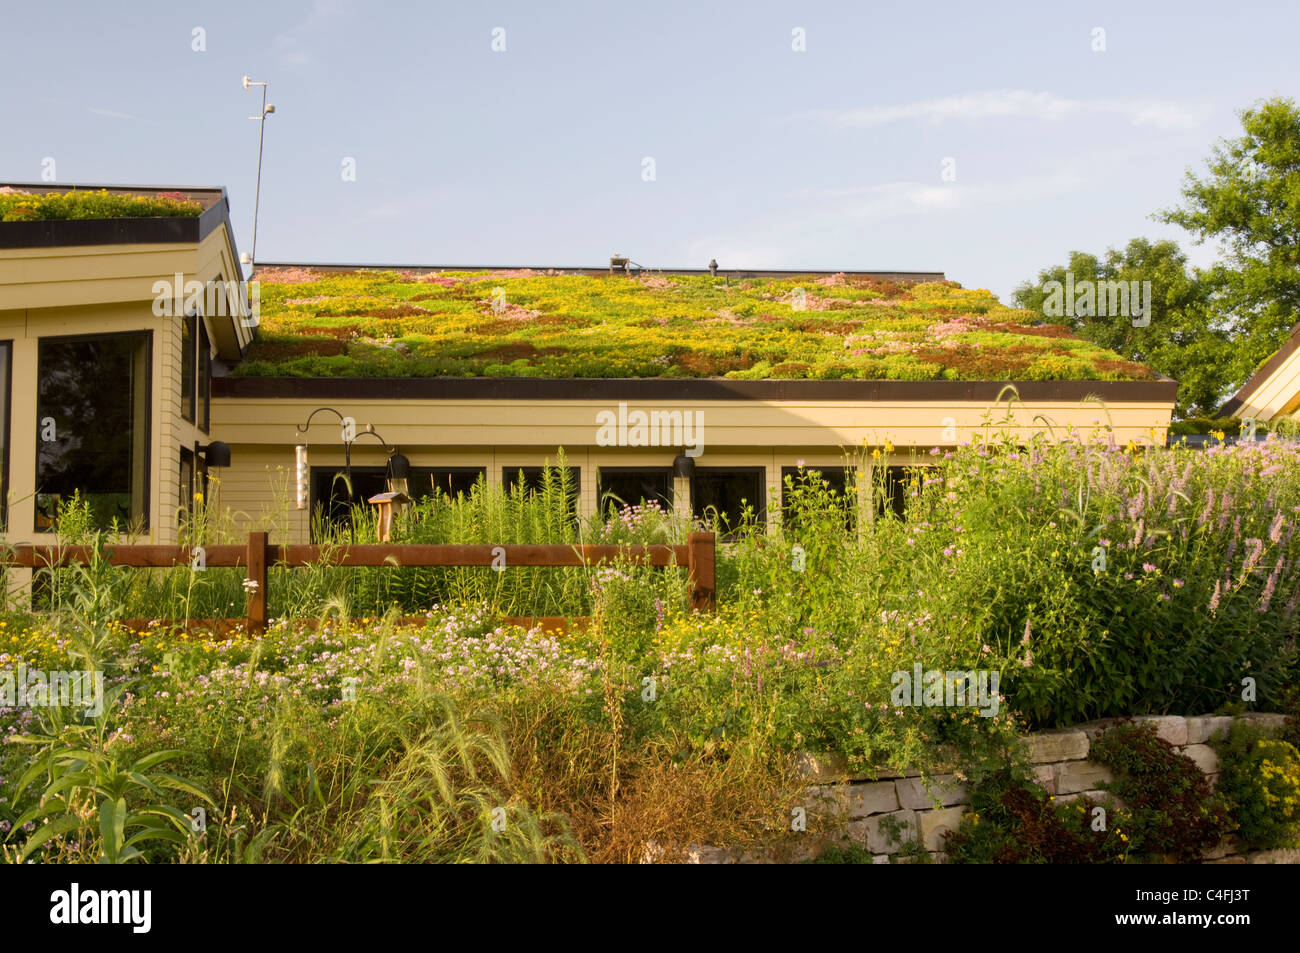 Lebanon Hills Visitor Center In Eagan Minnesota Showing Vegetation On Green  Roof And Native Plant Gardens